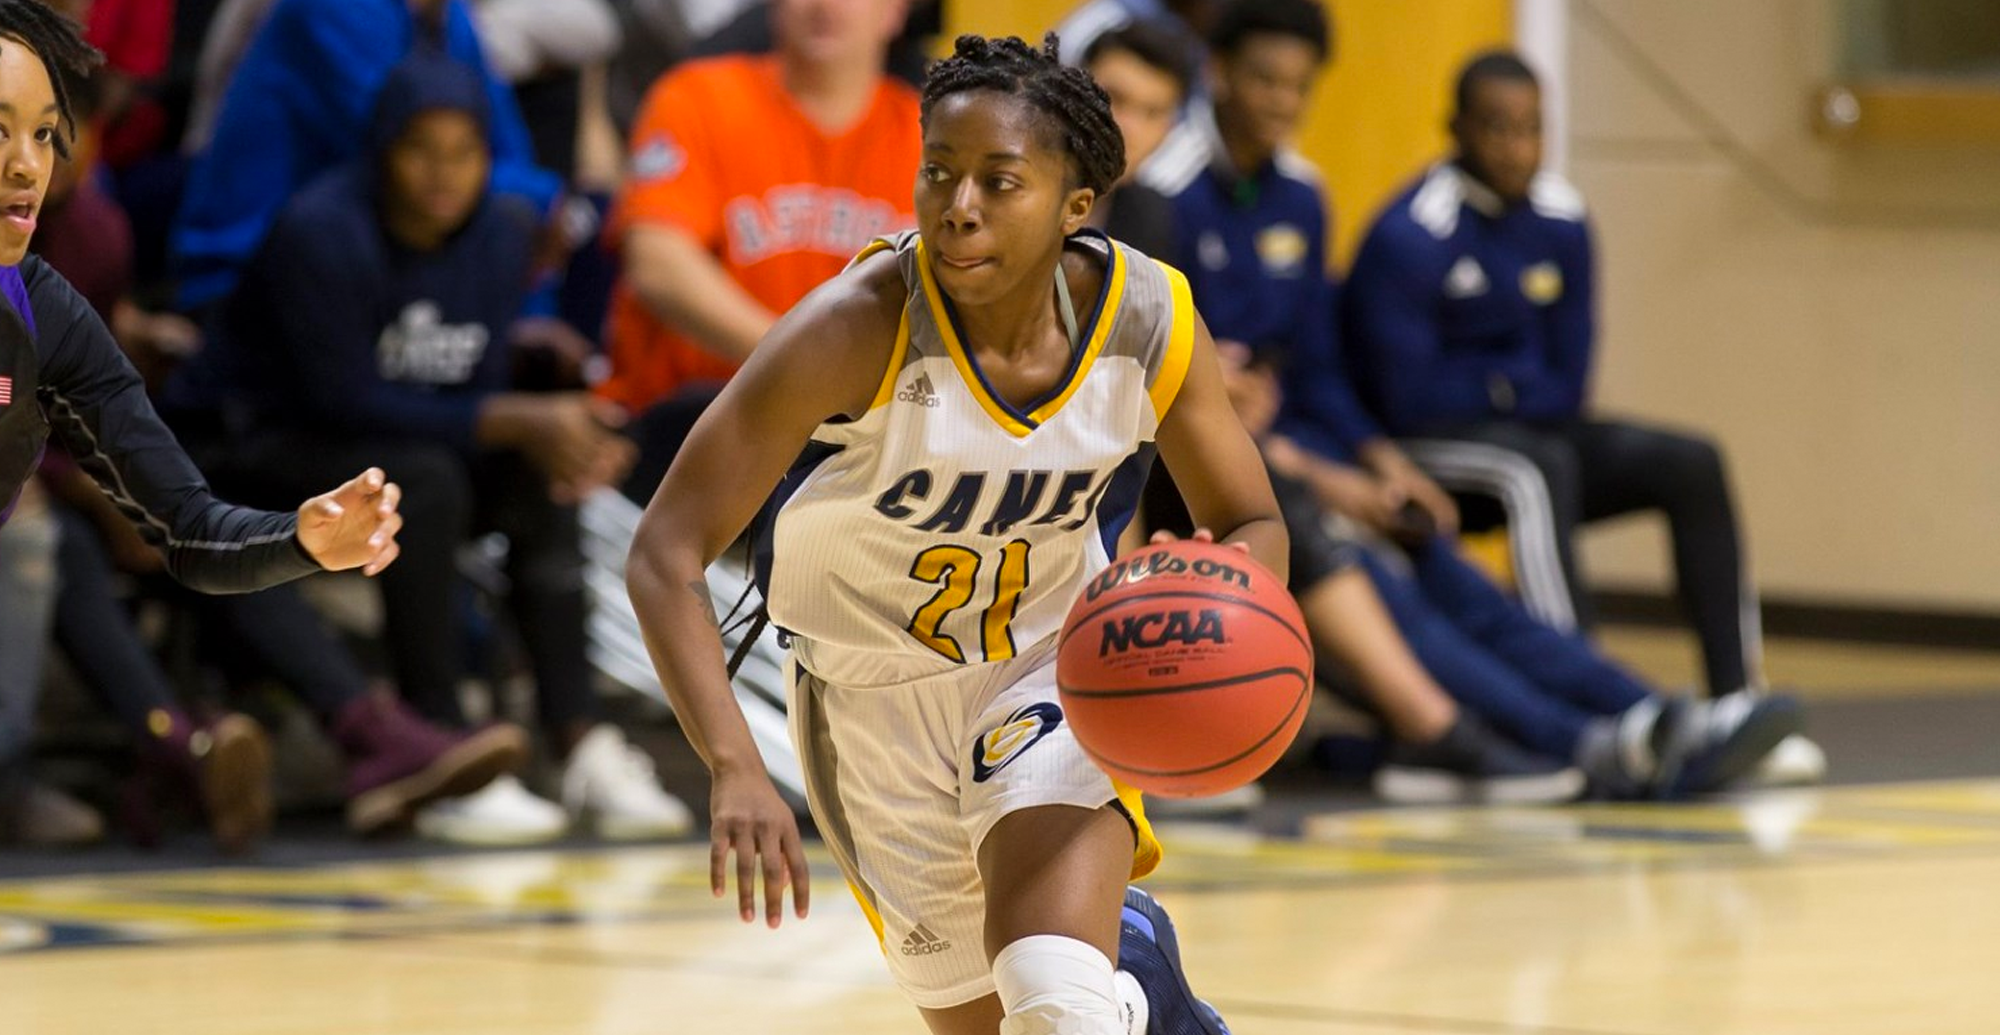 First Half Flaws Lift Eckerd Over GSW